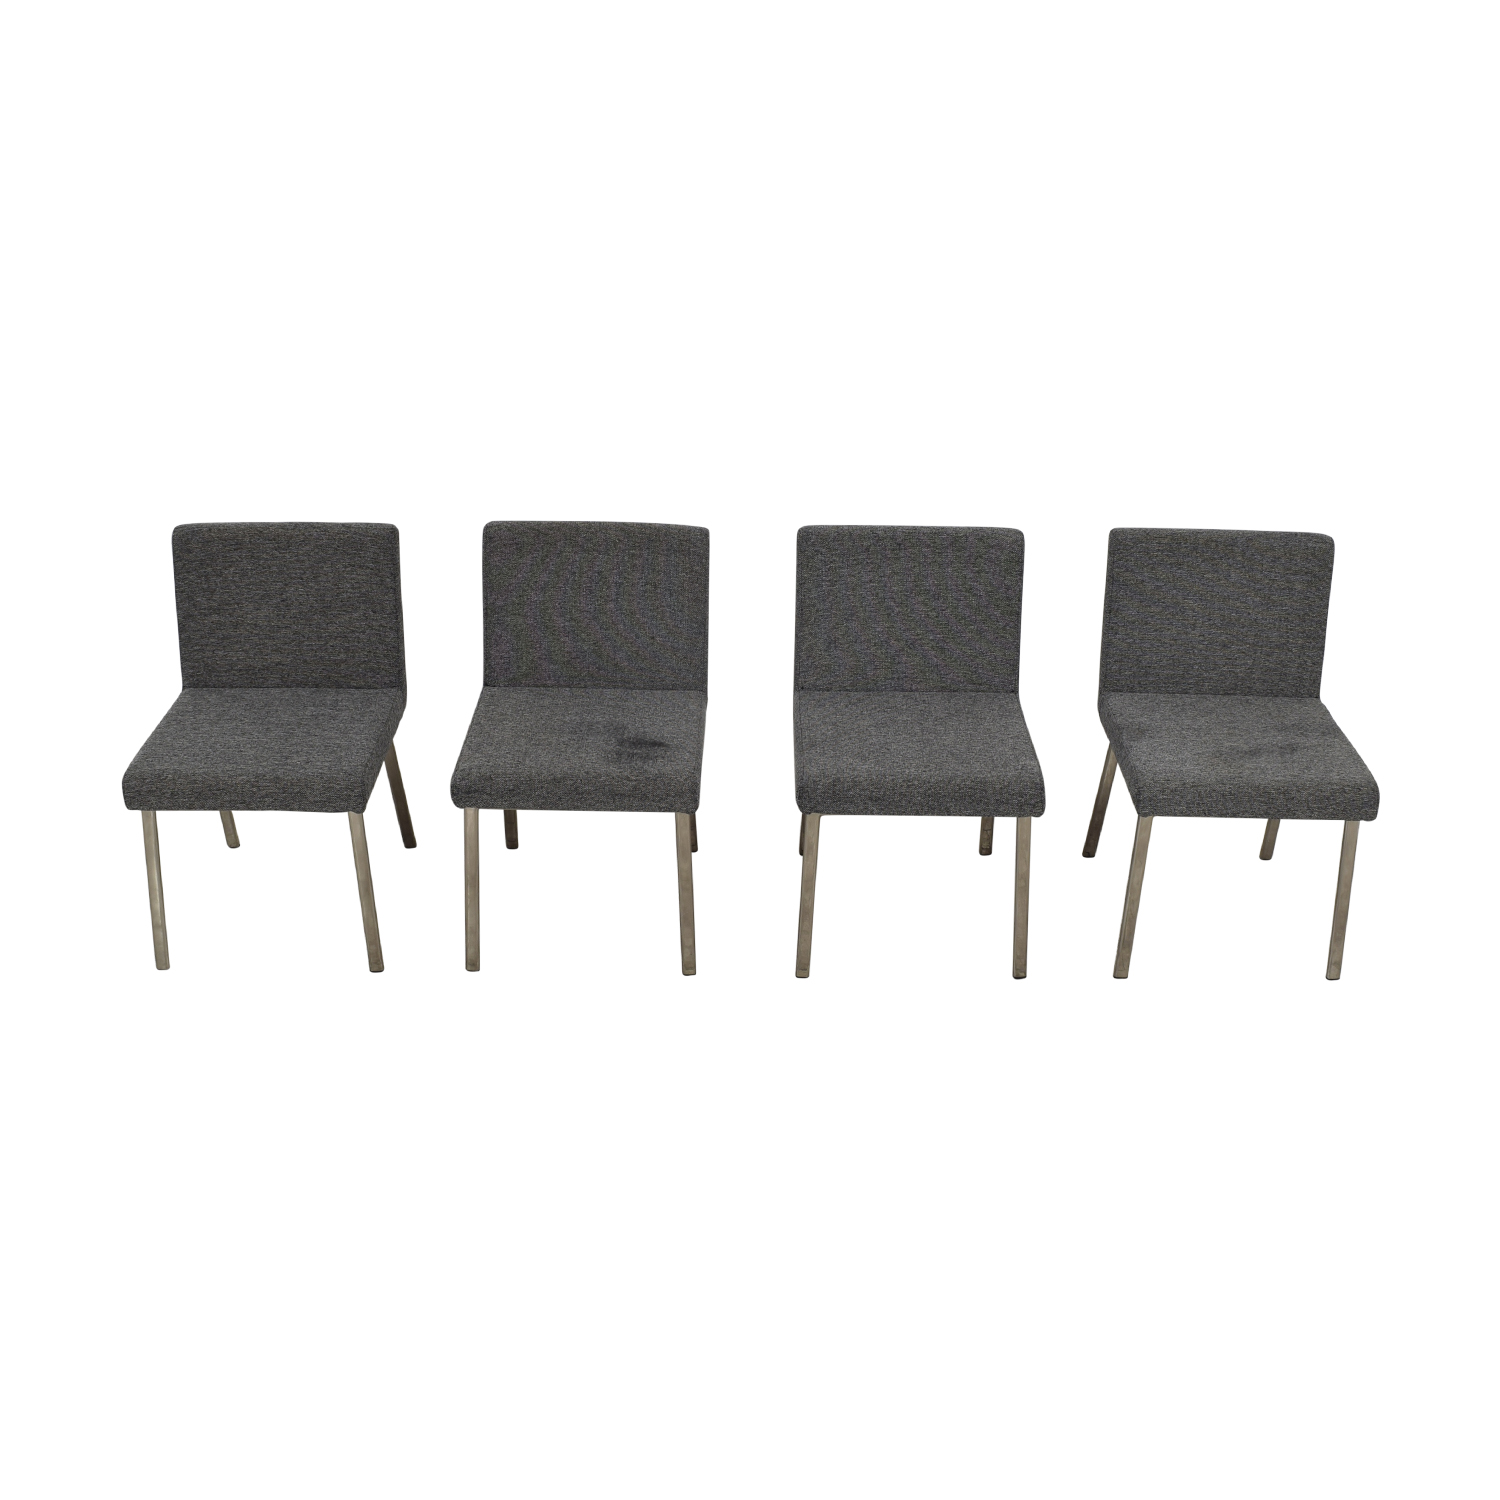 64% OFF - CB2 CB2 Functional Dining Room Chairs / Chairs